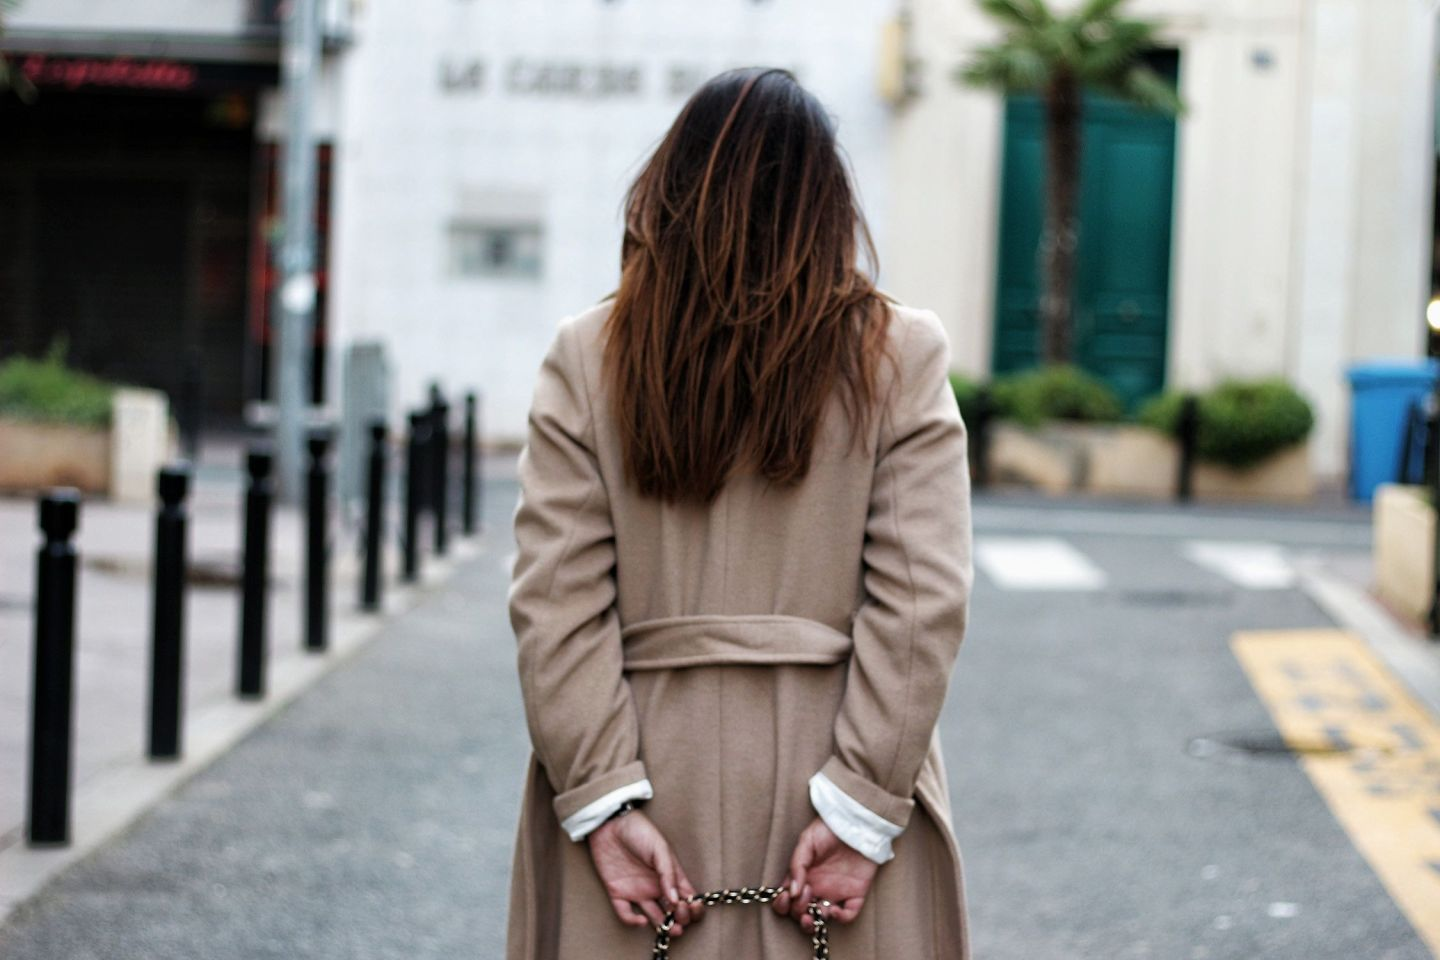 manteau camel, camel, sac inspi chanel, manteau h&m, zara, sheinside, pantalon simili cuir, pantalon simili zara, the green ananas, blogueuse mode, fashion blogger, chemise leopard, leopard